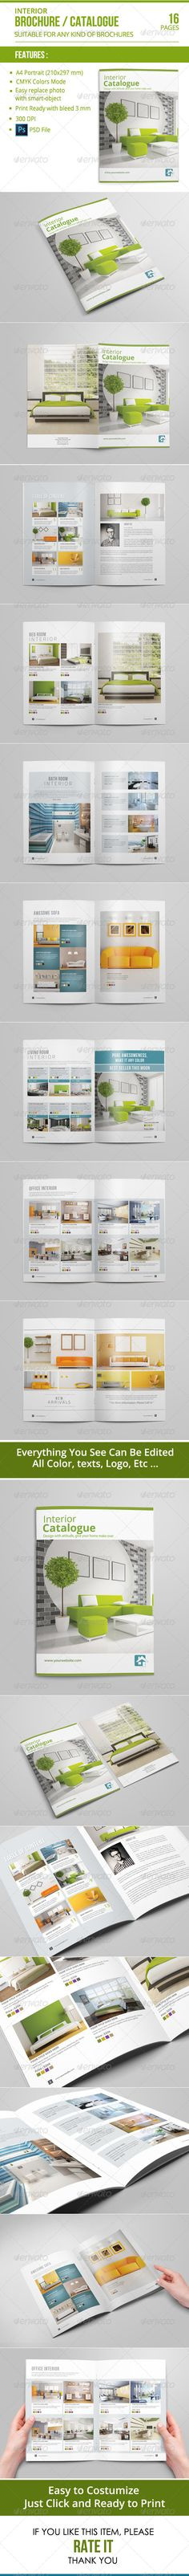 Catalogue / Brochure by adekfotografia Catalogue / Brochure This 14 page minimal brochure template is for designers working on interior design catalogues, product catalo